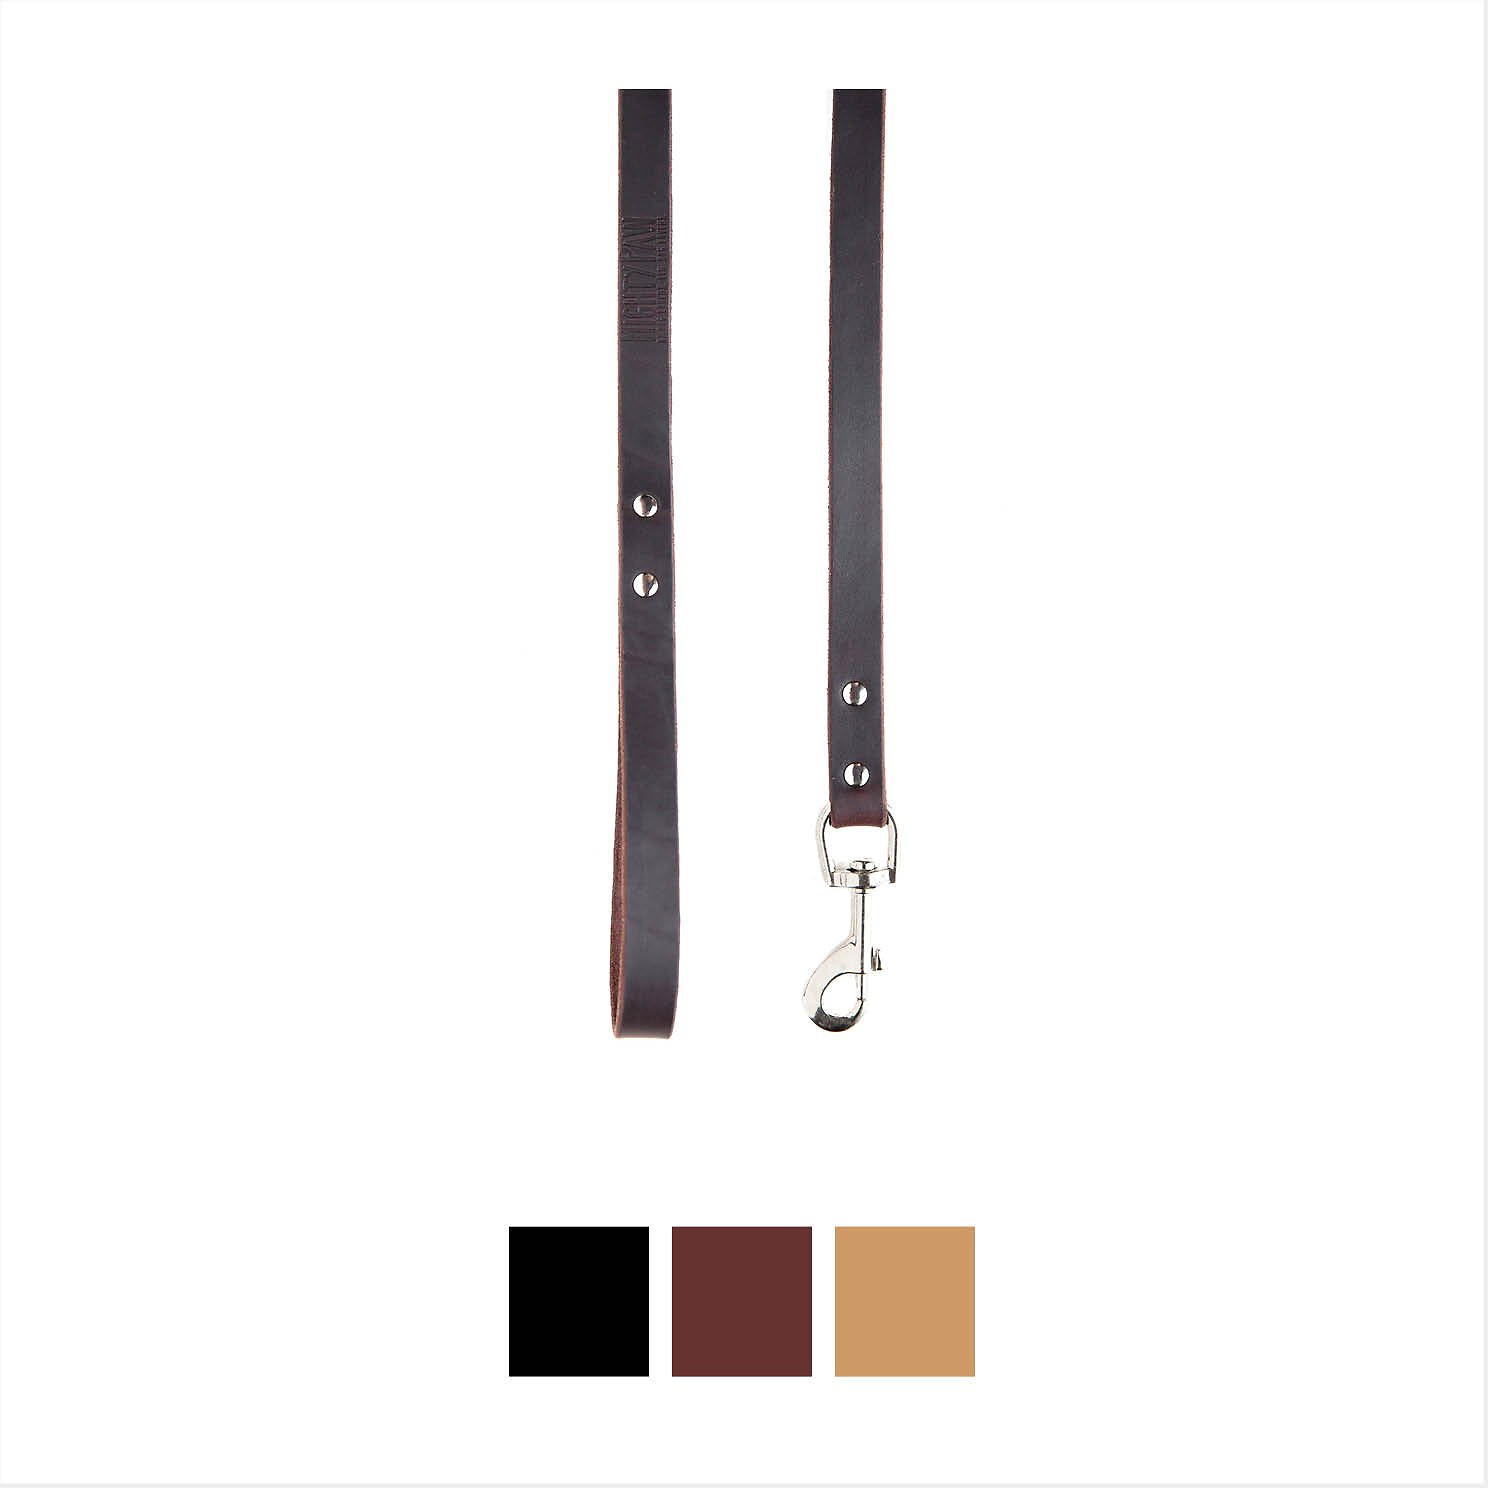 Mighty Paw Leather Dog Leash, Light Brown, Standard Mighty Paw Leather Dog Leash, Light Brown, Standard new photo